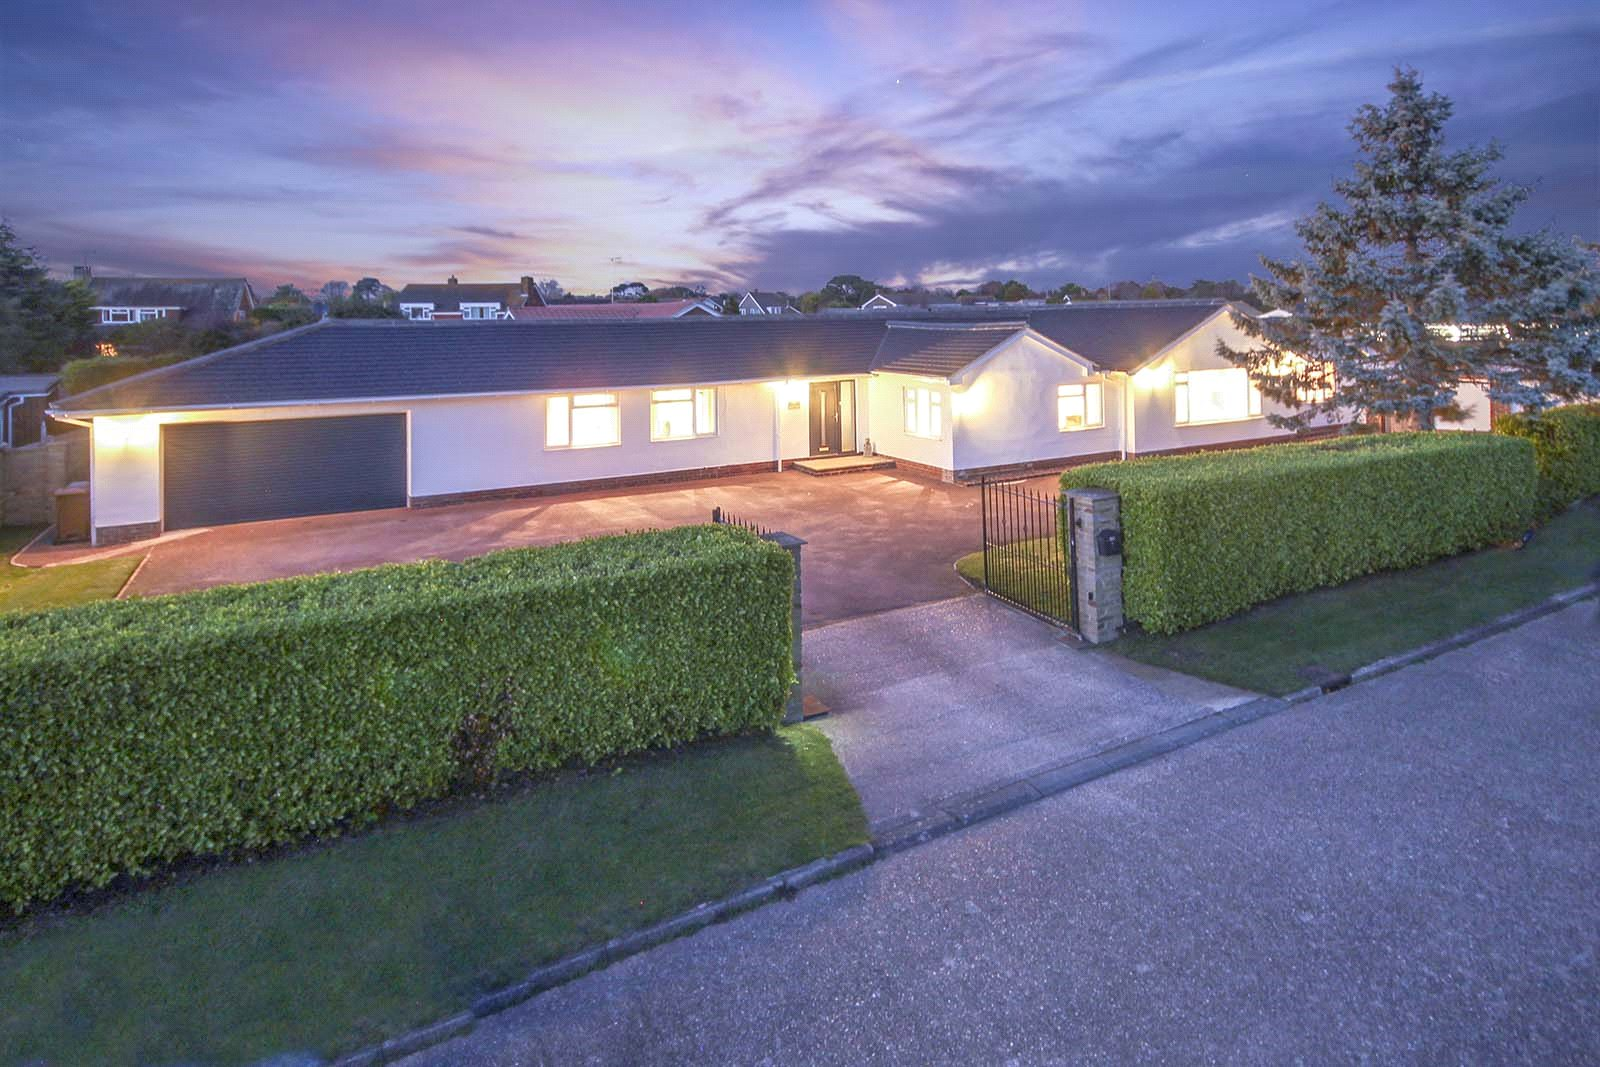 5 bed bungalow for sale in Madehurst Close, Willowhayne, East Preston - Property Image 1